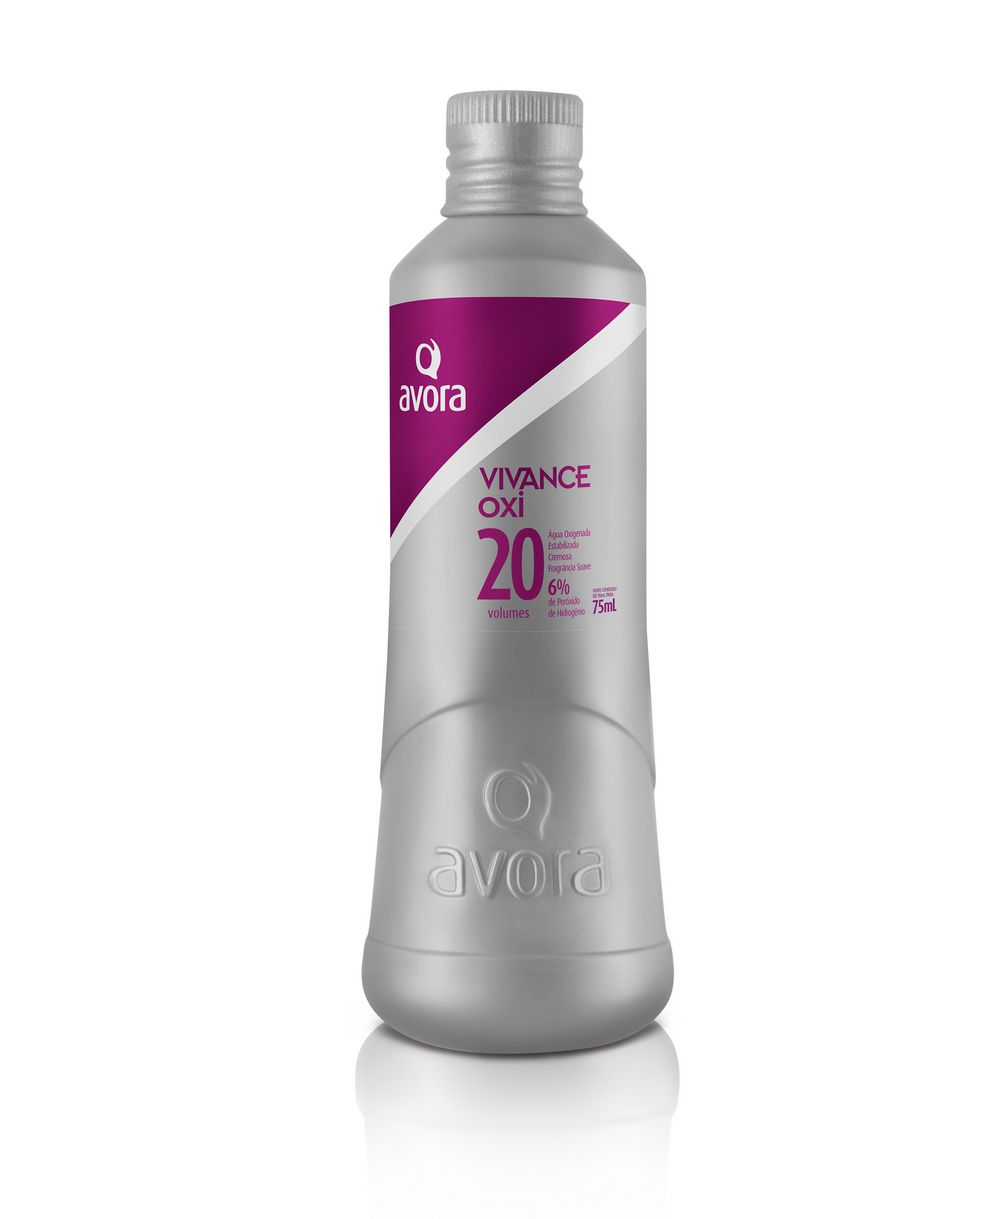 Avora Vivance Água Oxigenada 20vol 75ml